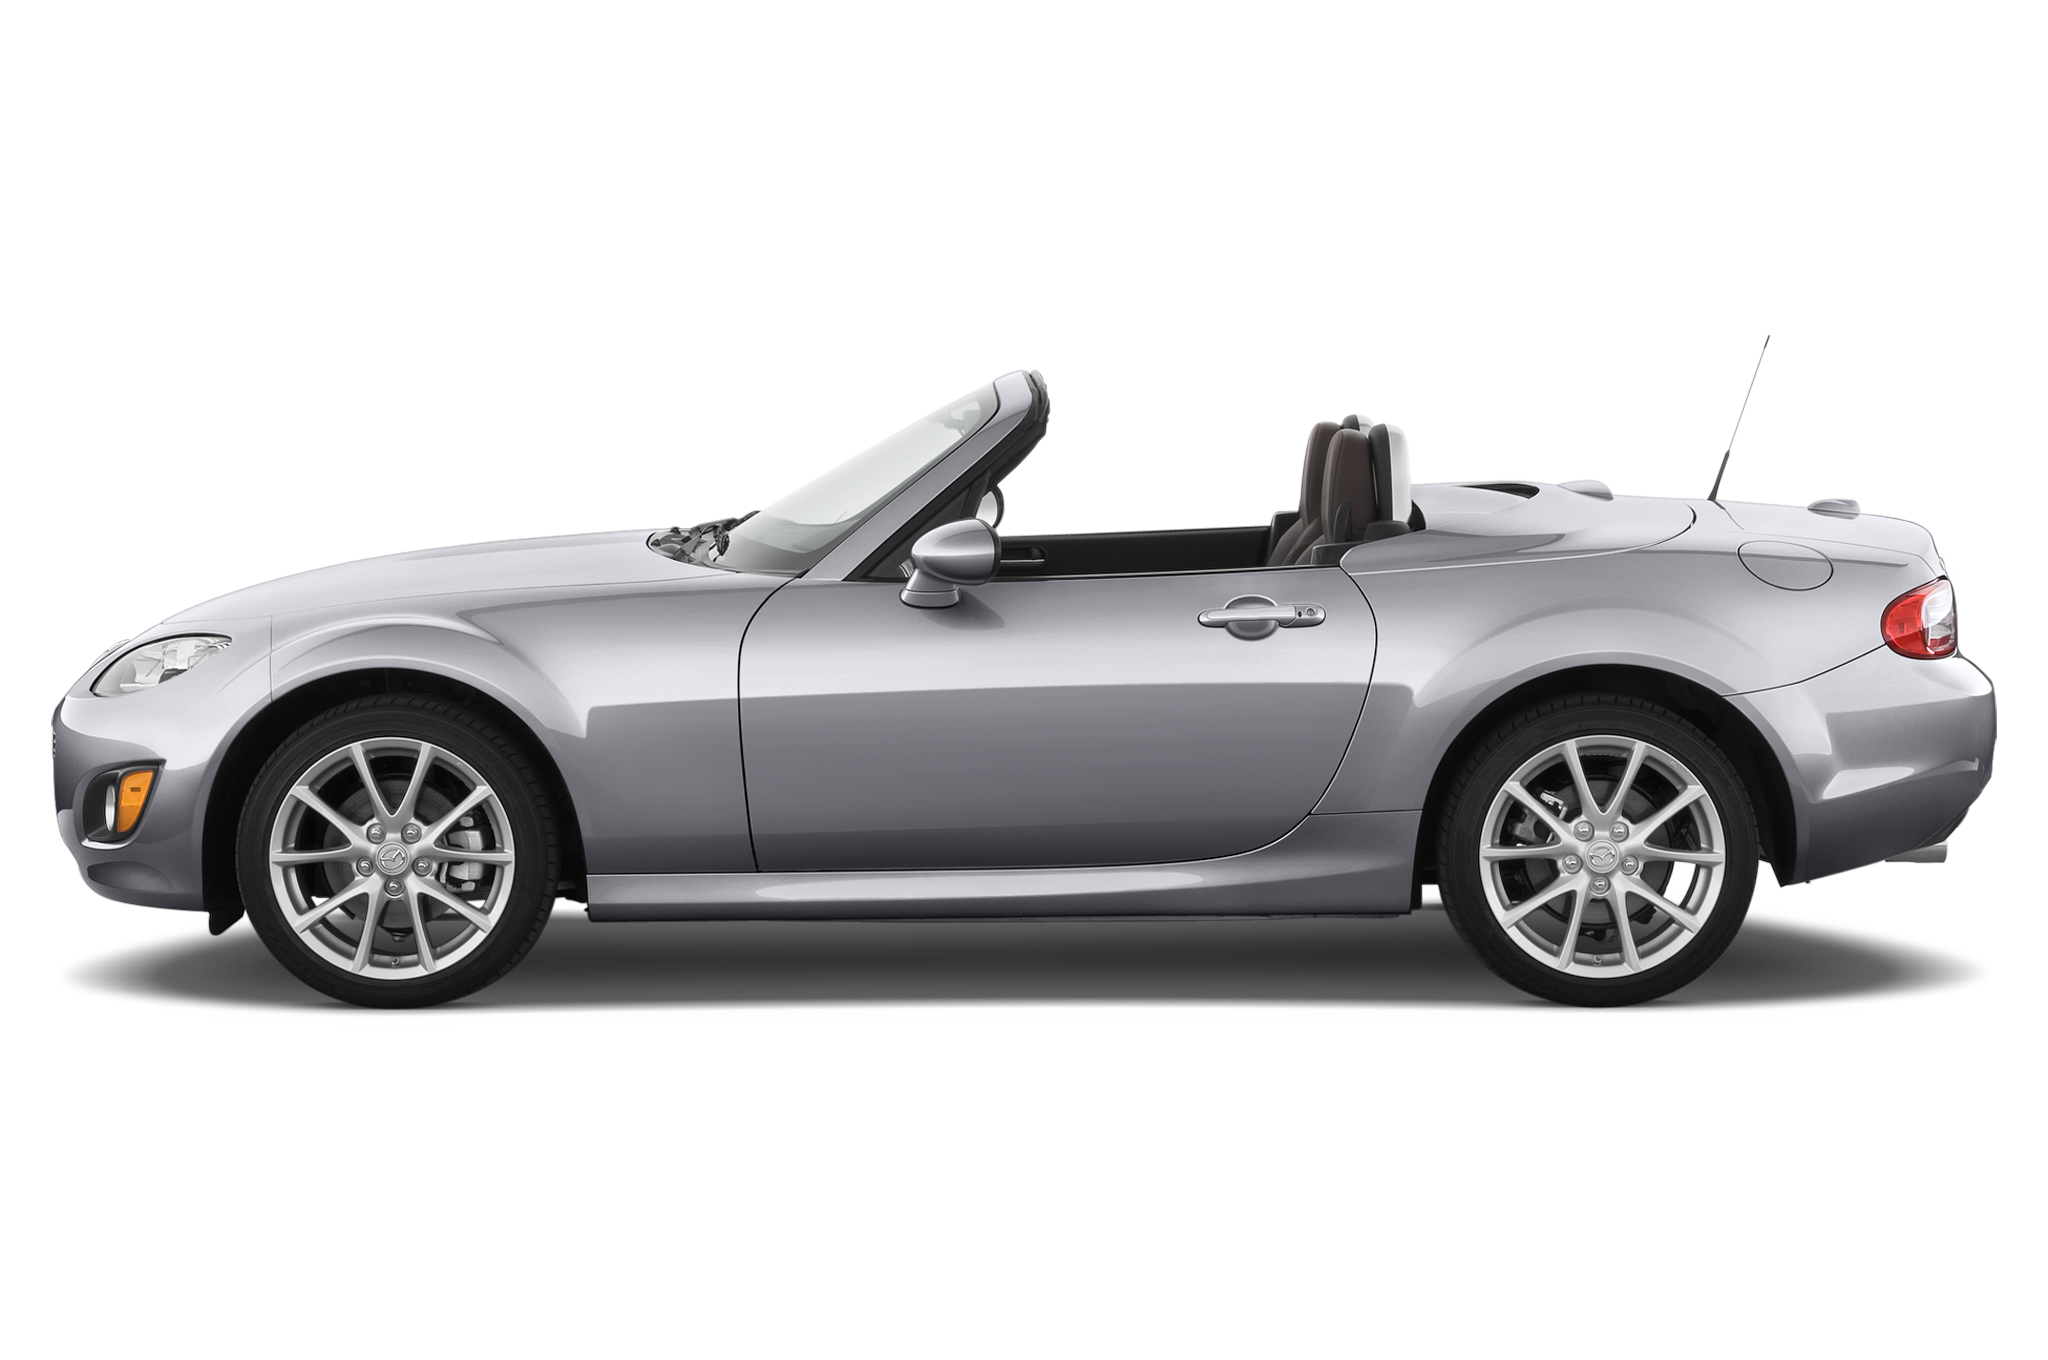 http://st.automobilemag.com/uploads/sites/10/2015/11/2012-mazda-mx5-miata-grand-touring-hard-top-auto-convertible-side-view.png